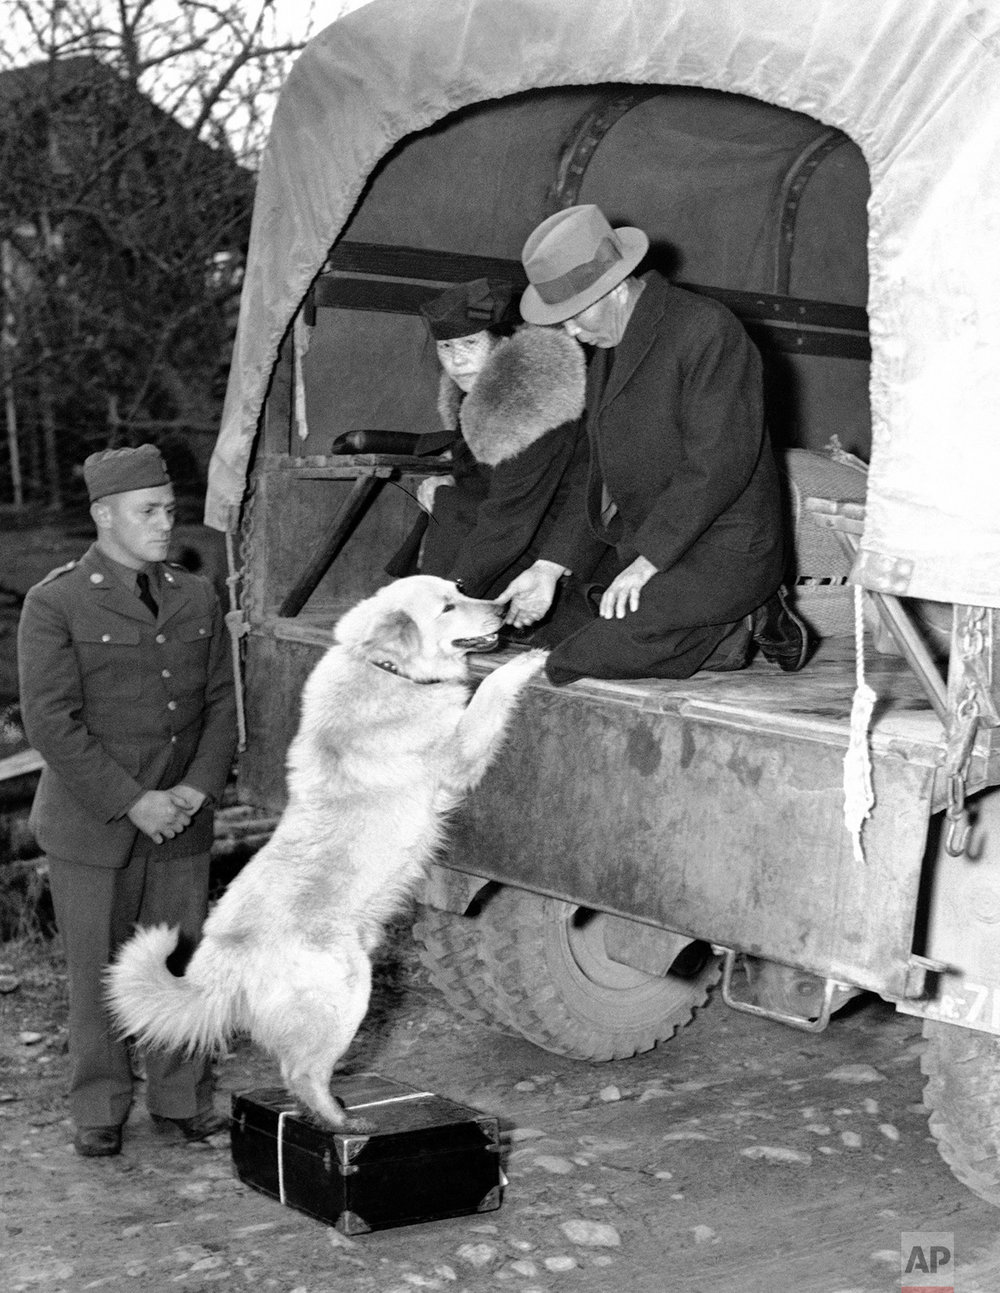 This Bainbridge Island Japanese man and wife give a farewell pat to their dog in Seattle, Washington, March 31, 1942 as they leave their island home for California internment camp. Army orders prohibited Japanese being interred from taking anything but personnel clothing, silverware, etc. Other belongings are being kept stored for the duration in a large warehouse under 24-hour armed guard. (AP Photo)